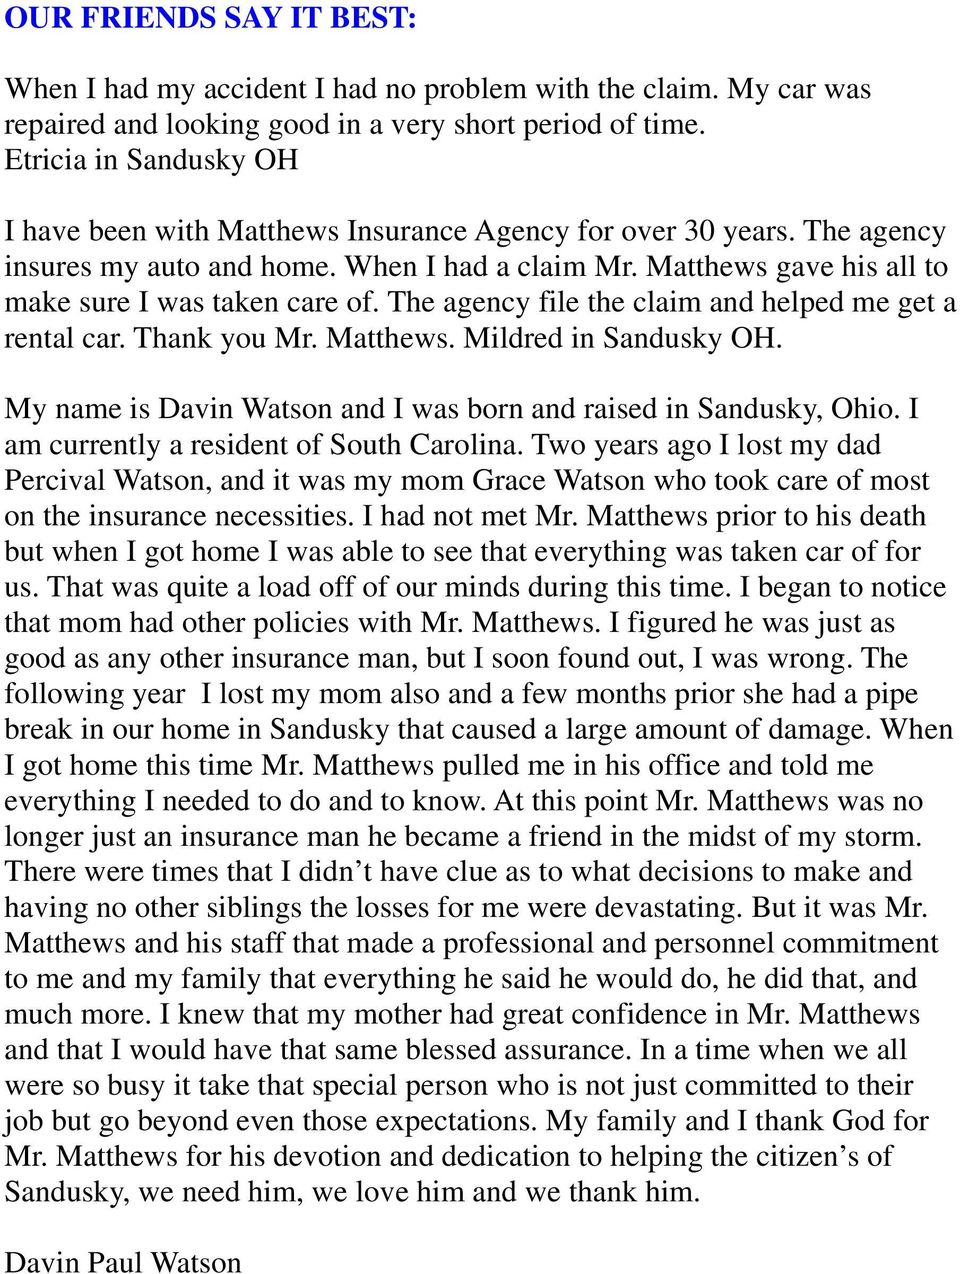 The agency file the claim and helped me get a rental car. Thank you Mr. Matthews. Mildred in Sandusky OH. My name is Davin Watson and I was born and raised in Sandusky, Ohio.